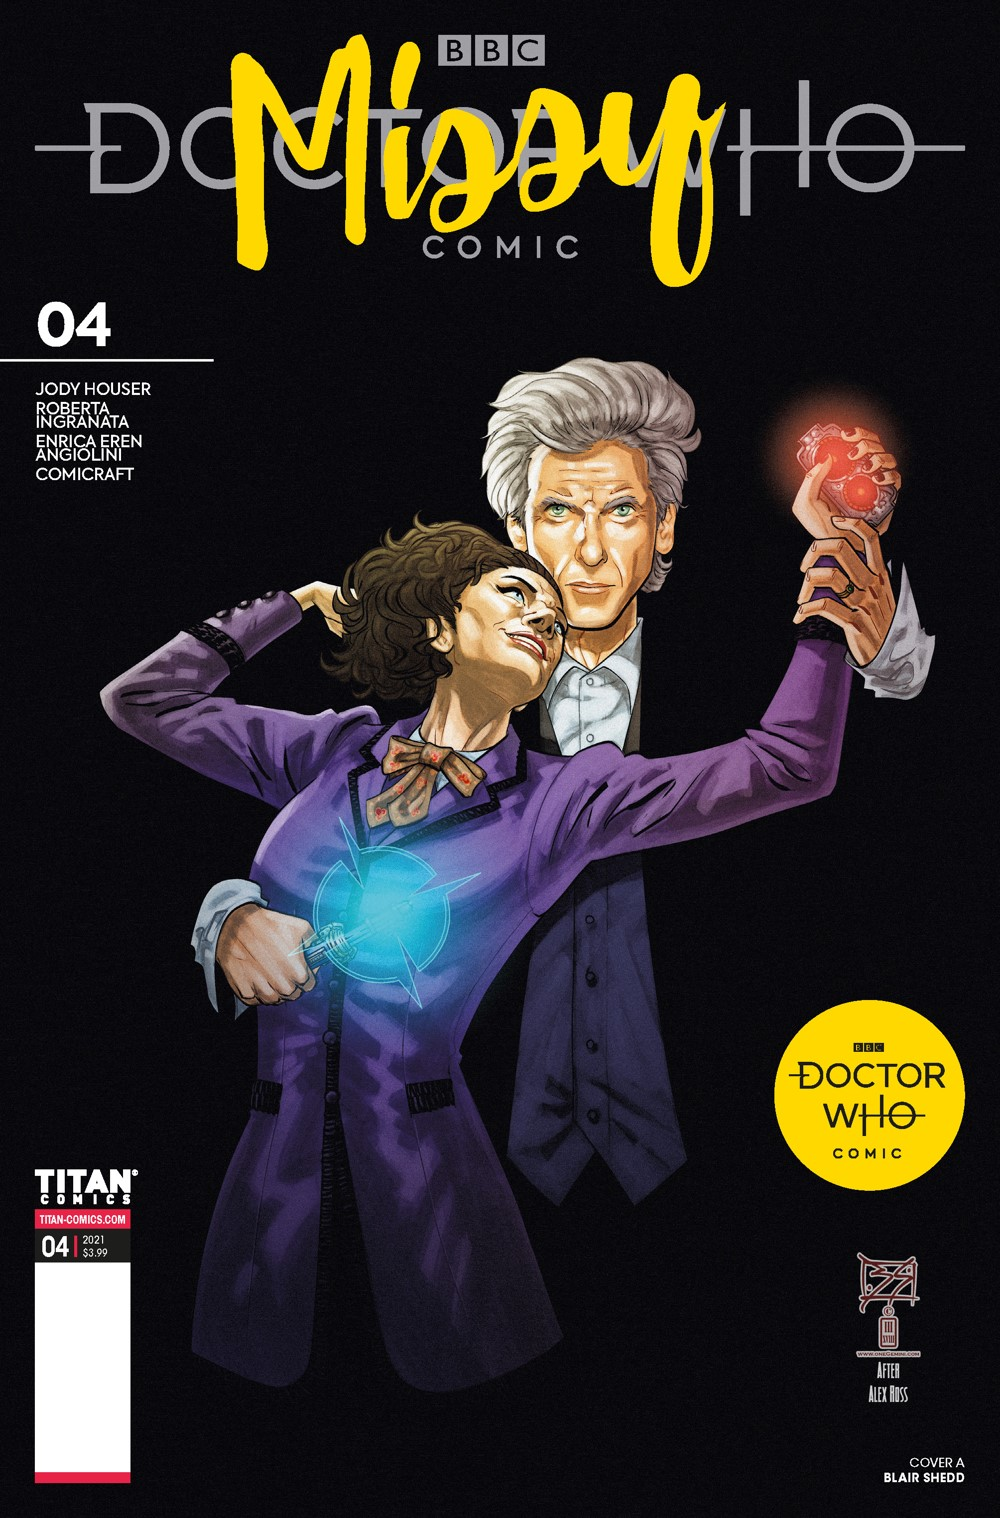 DW_Missy_4_01_COVER1 ComicList: Titan Comics New Releases for 07/28/2021